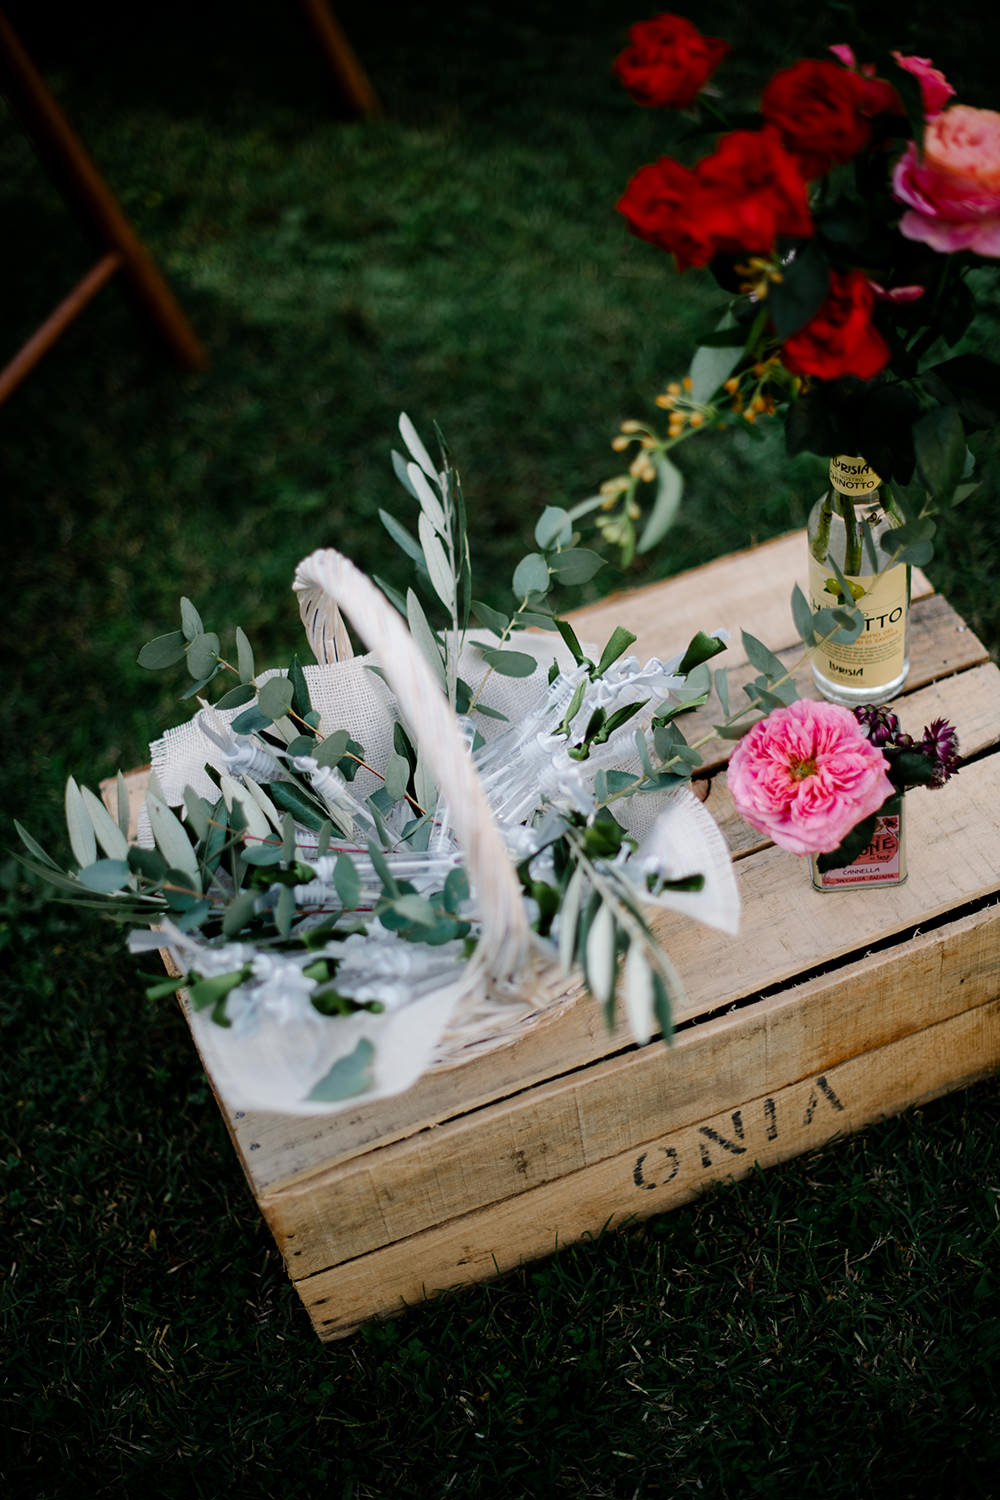 Wooden Crate Flowers Grenery Basket Tuscany Wedding Lelia Scarfiotti